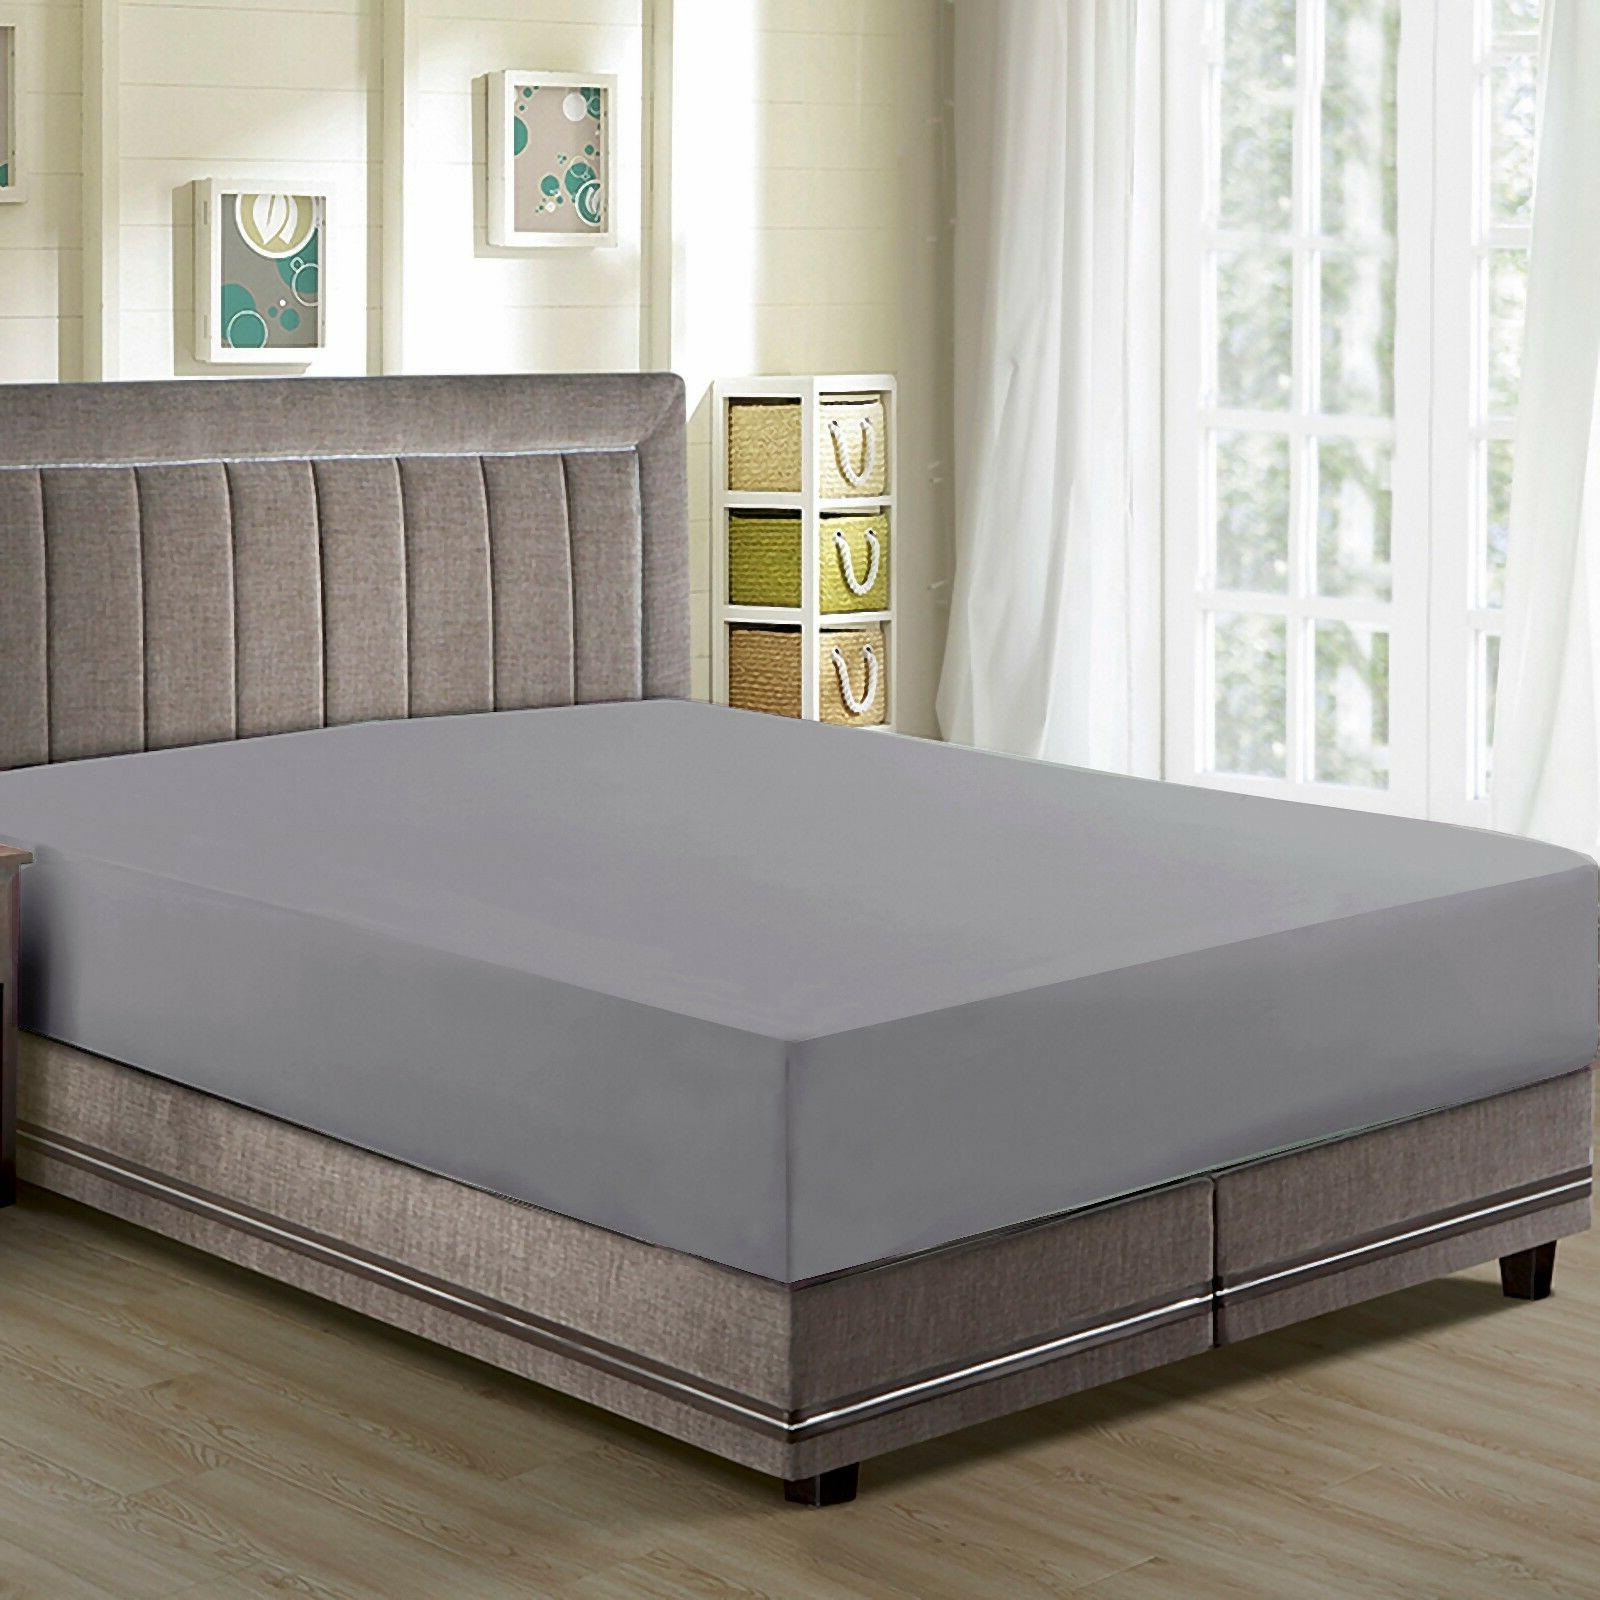 CC&DD- Fitted Sheets, Premier 1800 Microfiber ,Luxury Super